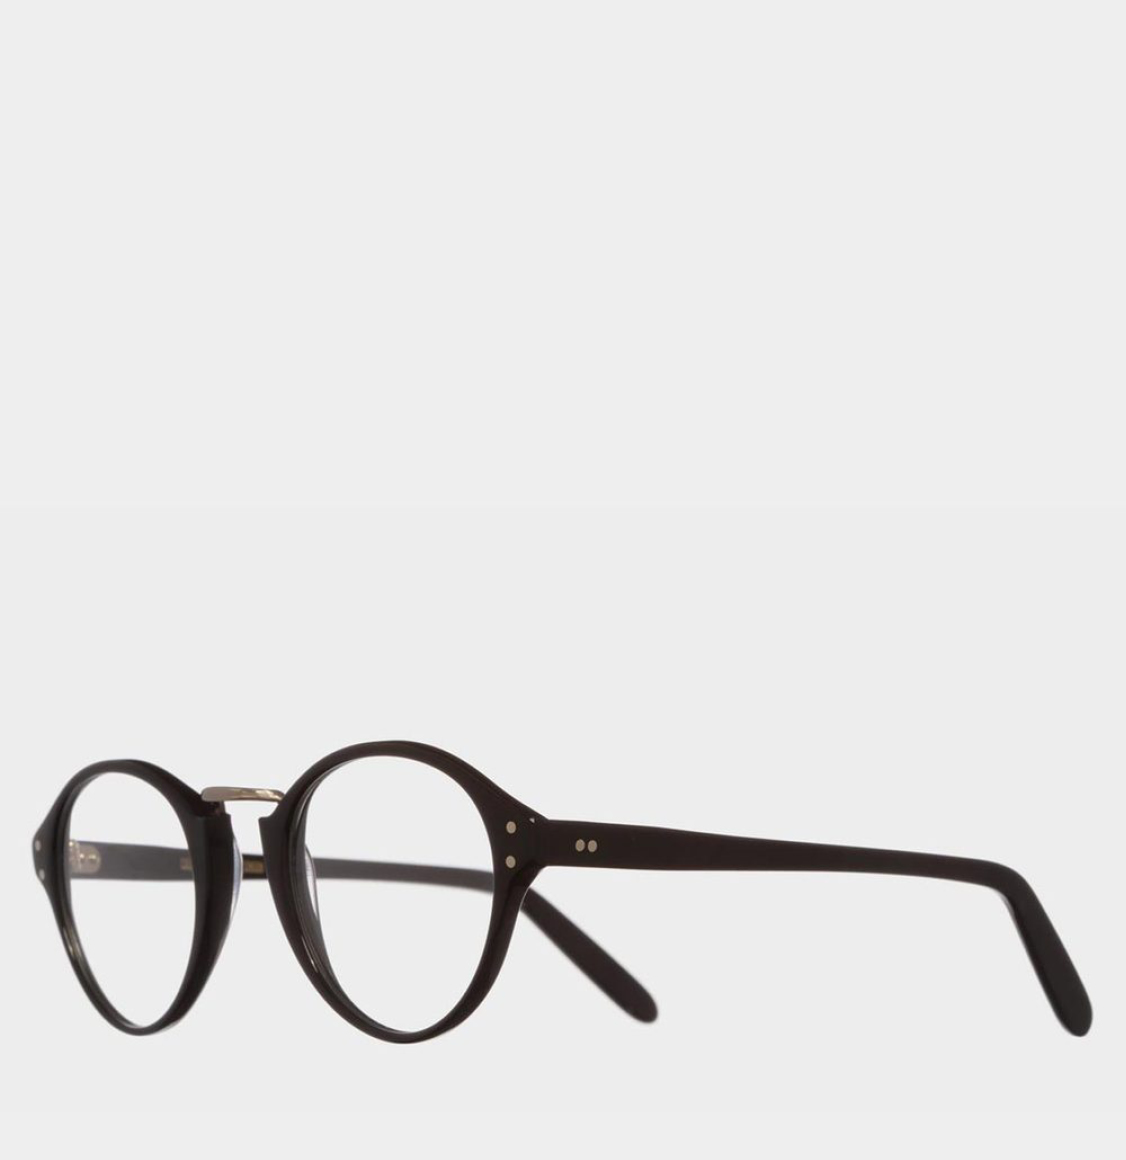 Cutler and Gross Oval-Frame Black Acetate Γυαλιά Οράσεως